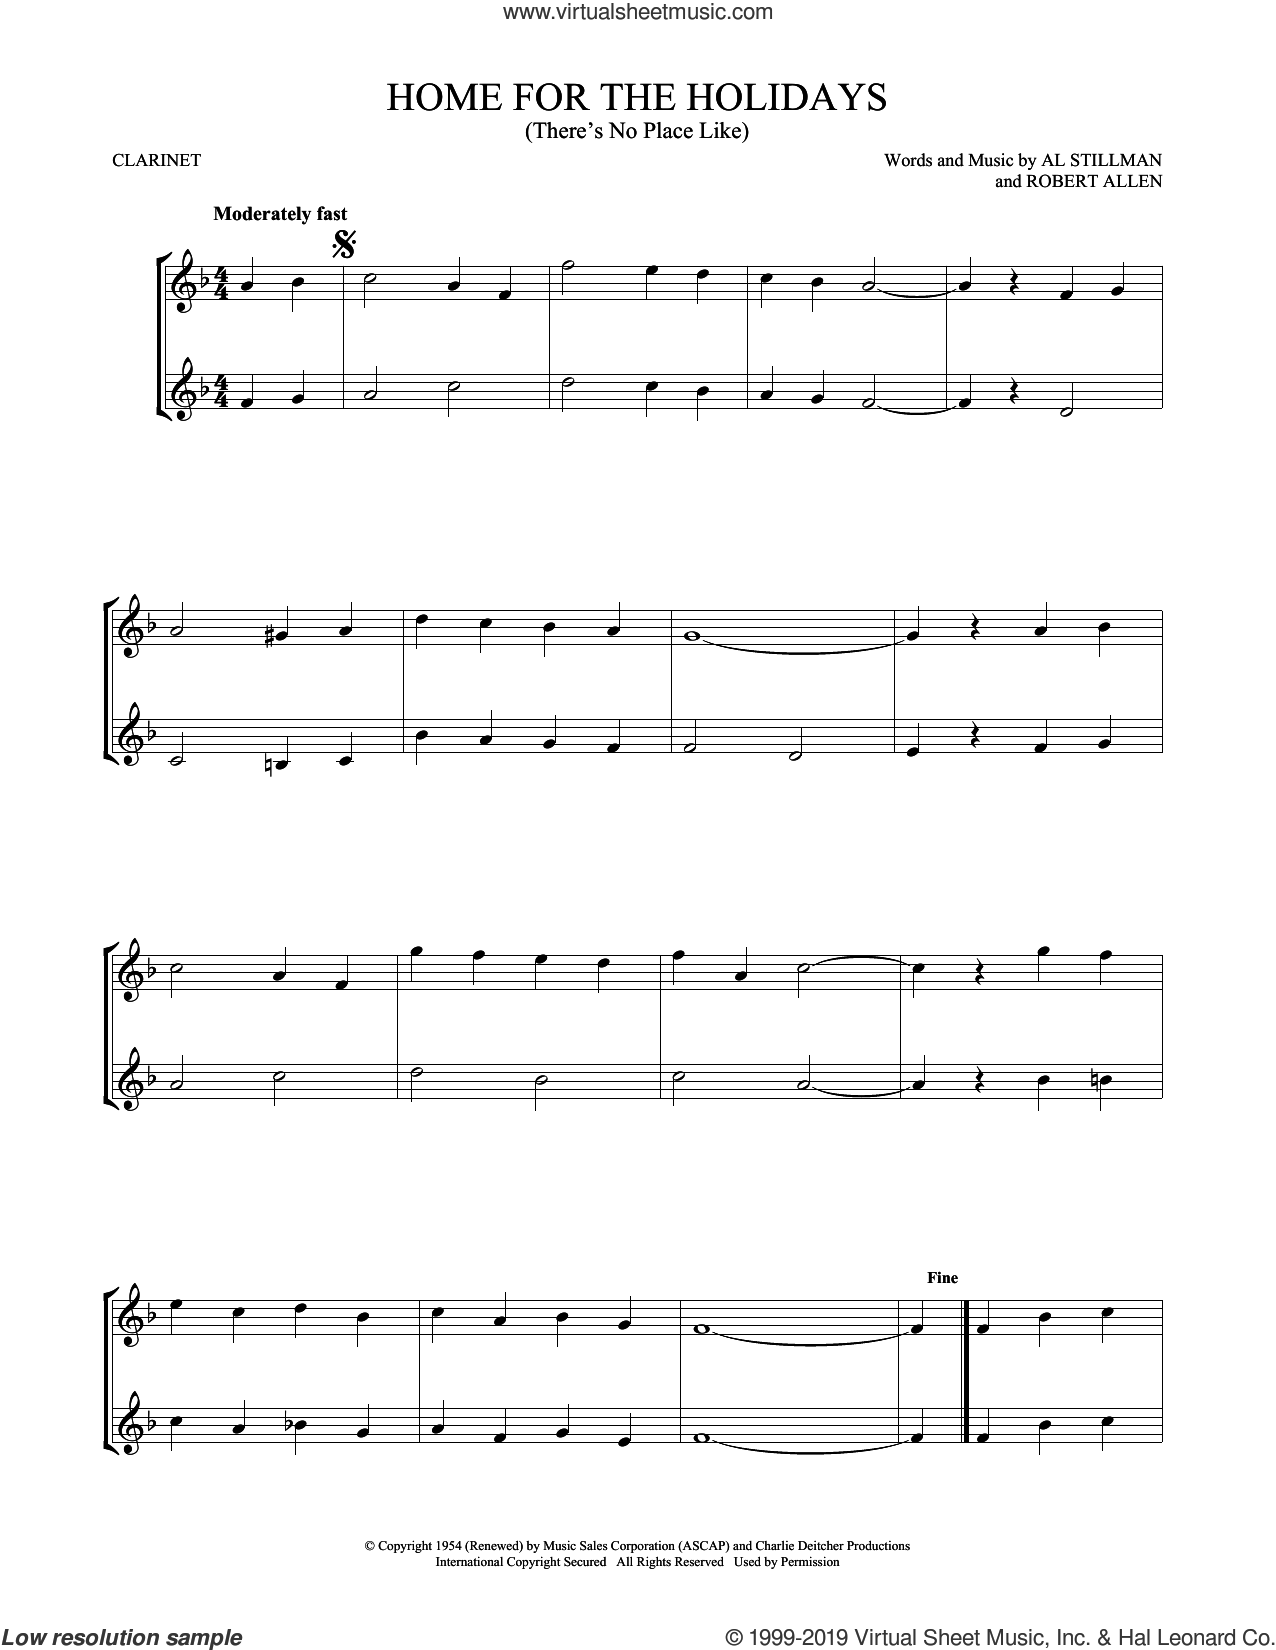 (There's No Place Like) Home For The Holidays sheet music for two clarinets (duets) by Perry Como, Al Stillman and Robert Allen, intermediate skill level